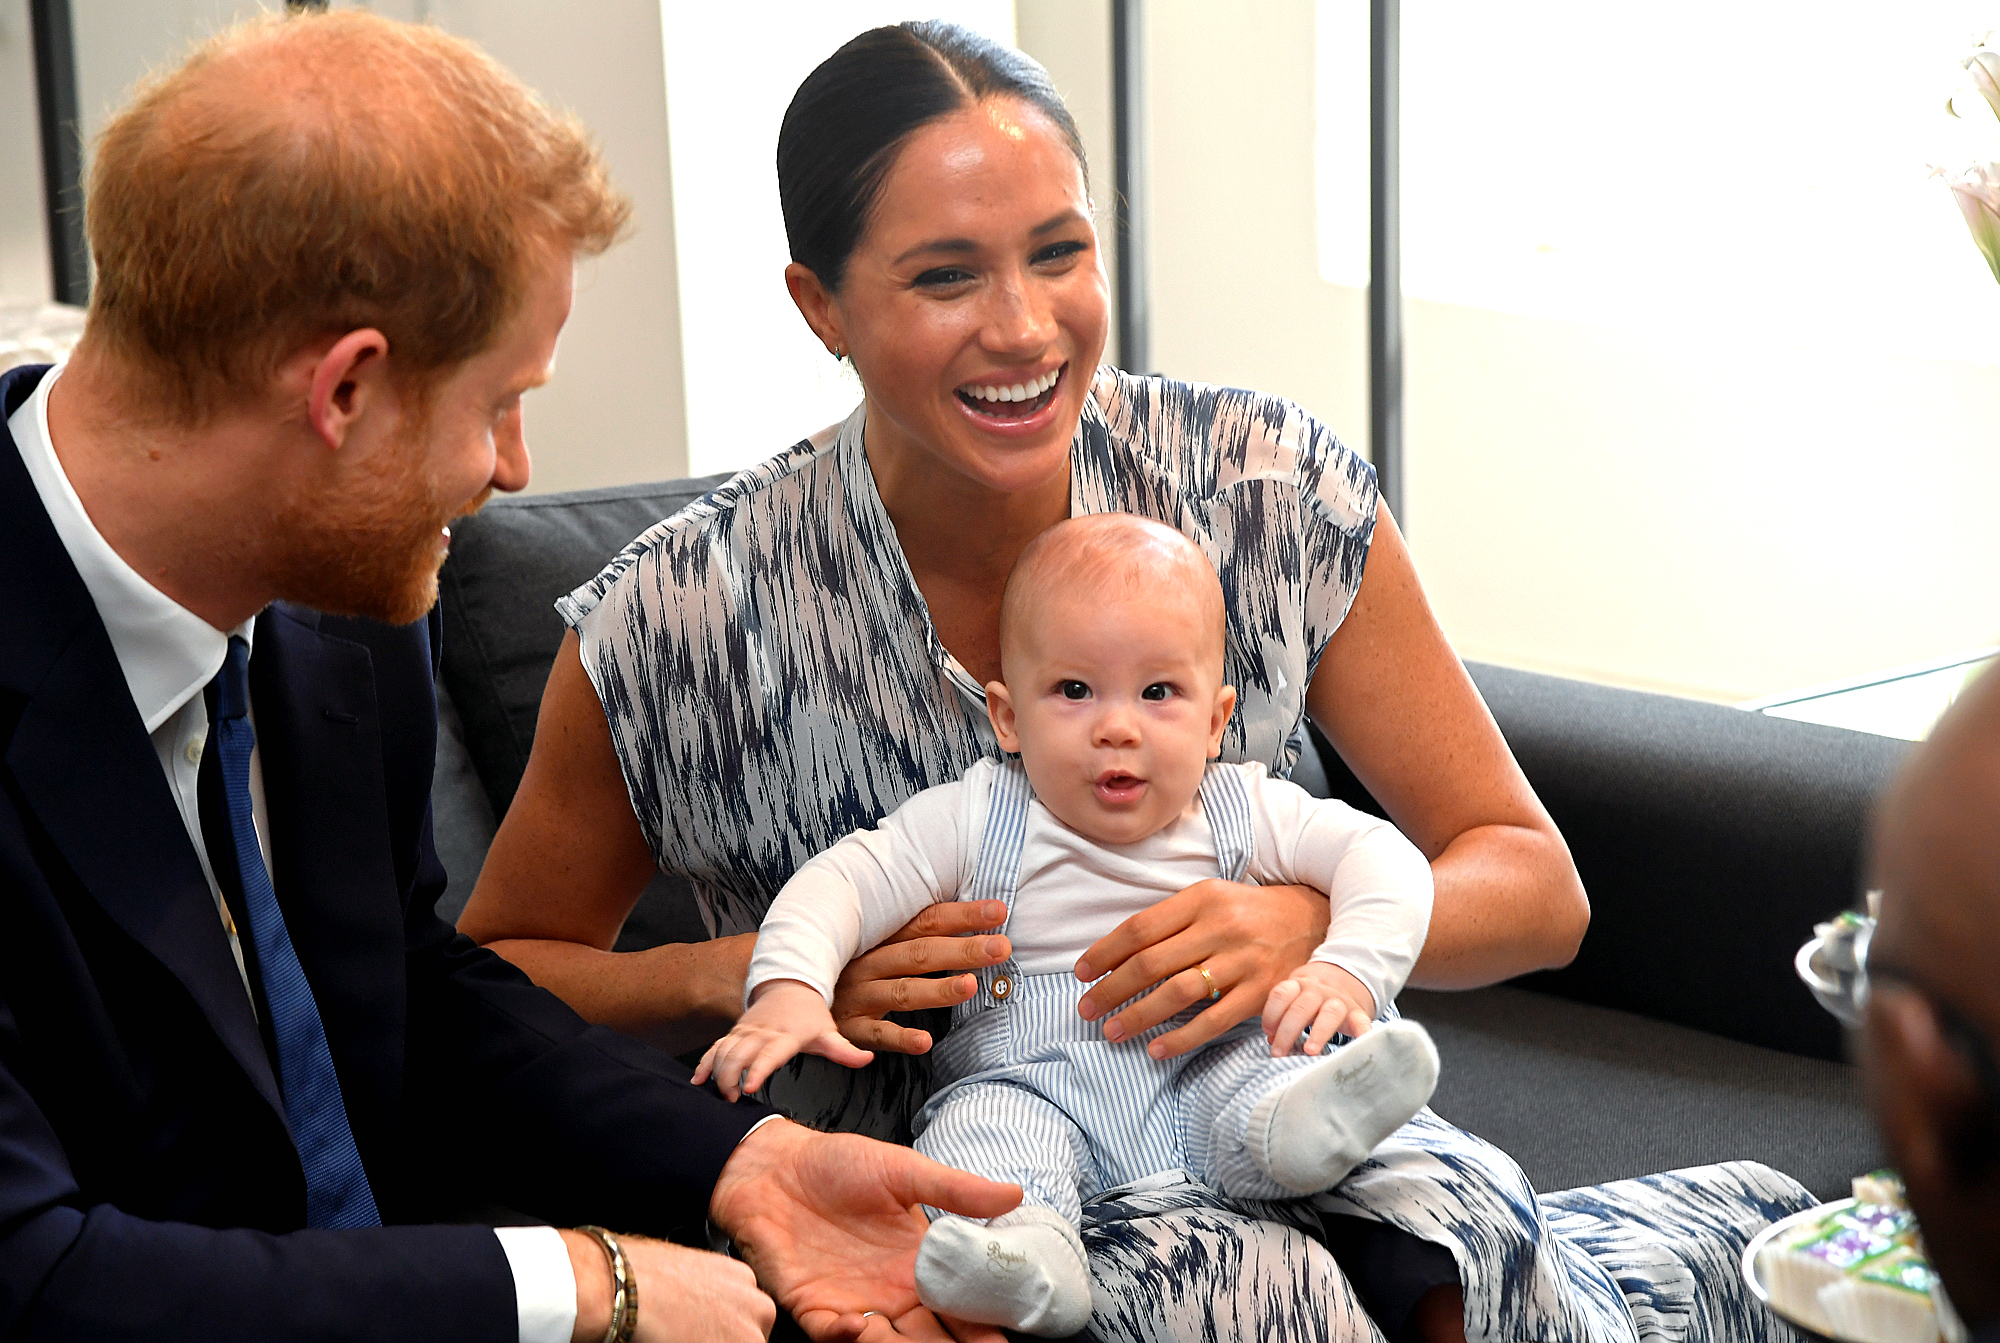 Duchess of Sussex Meghan Markle and Prince Harry The Duke holding baby Archie Visit South Africa